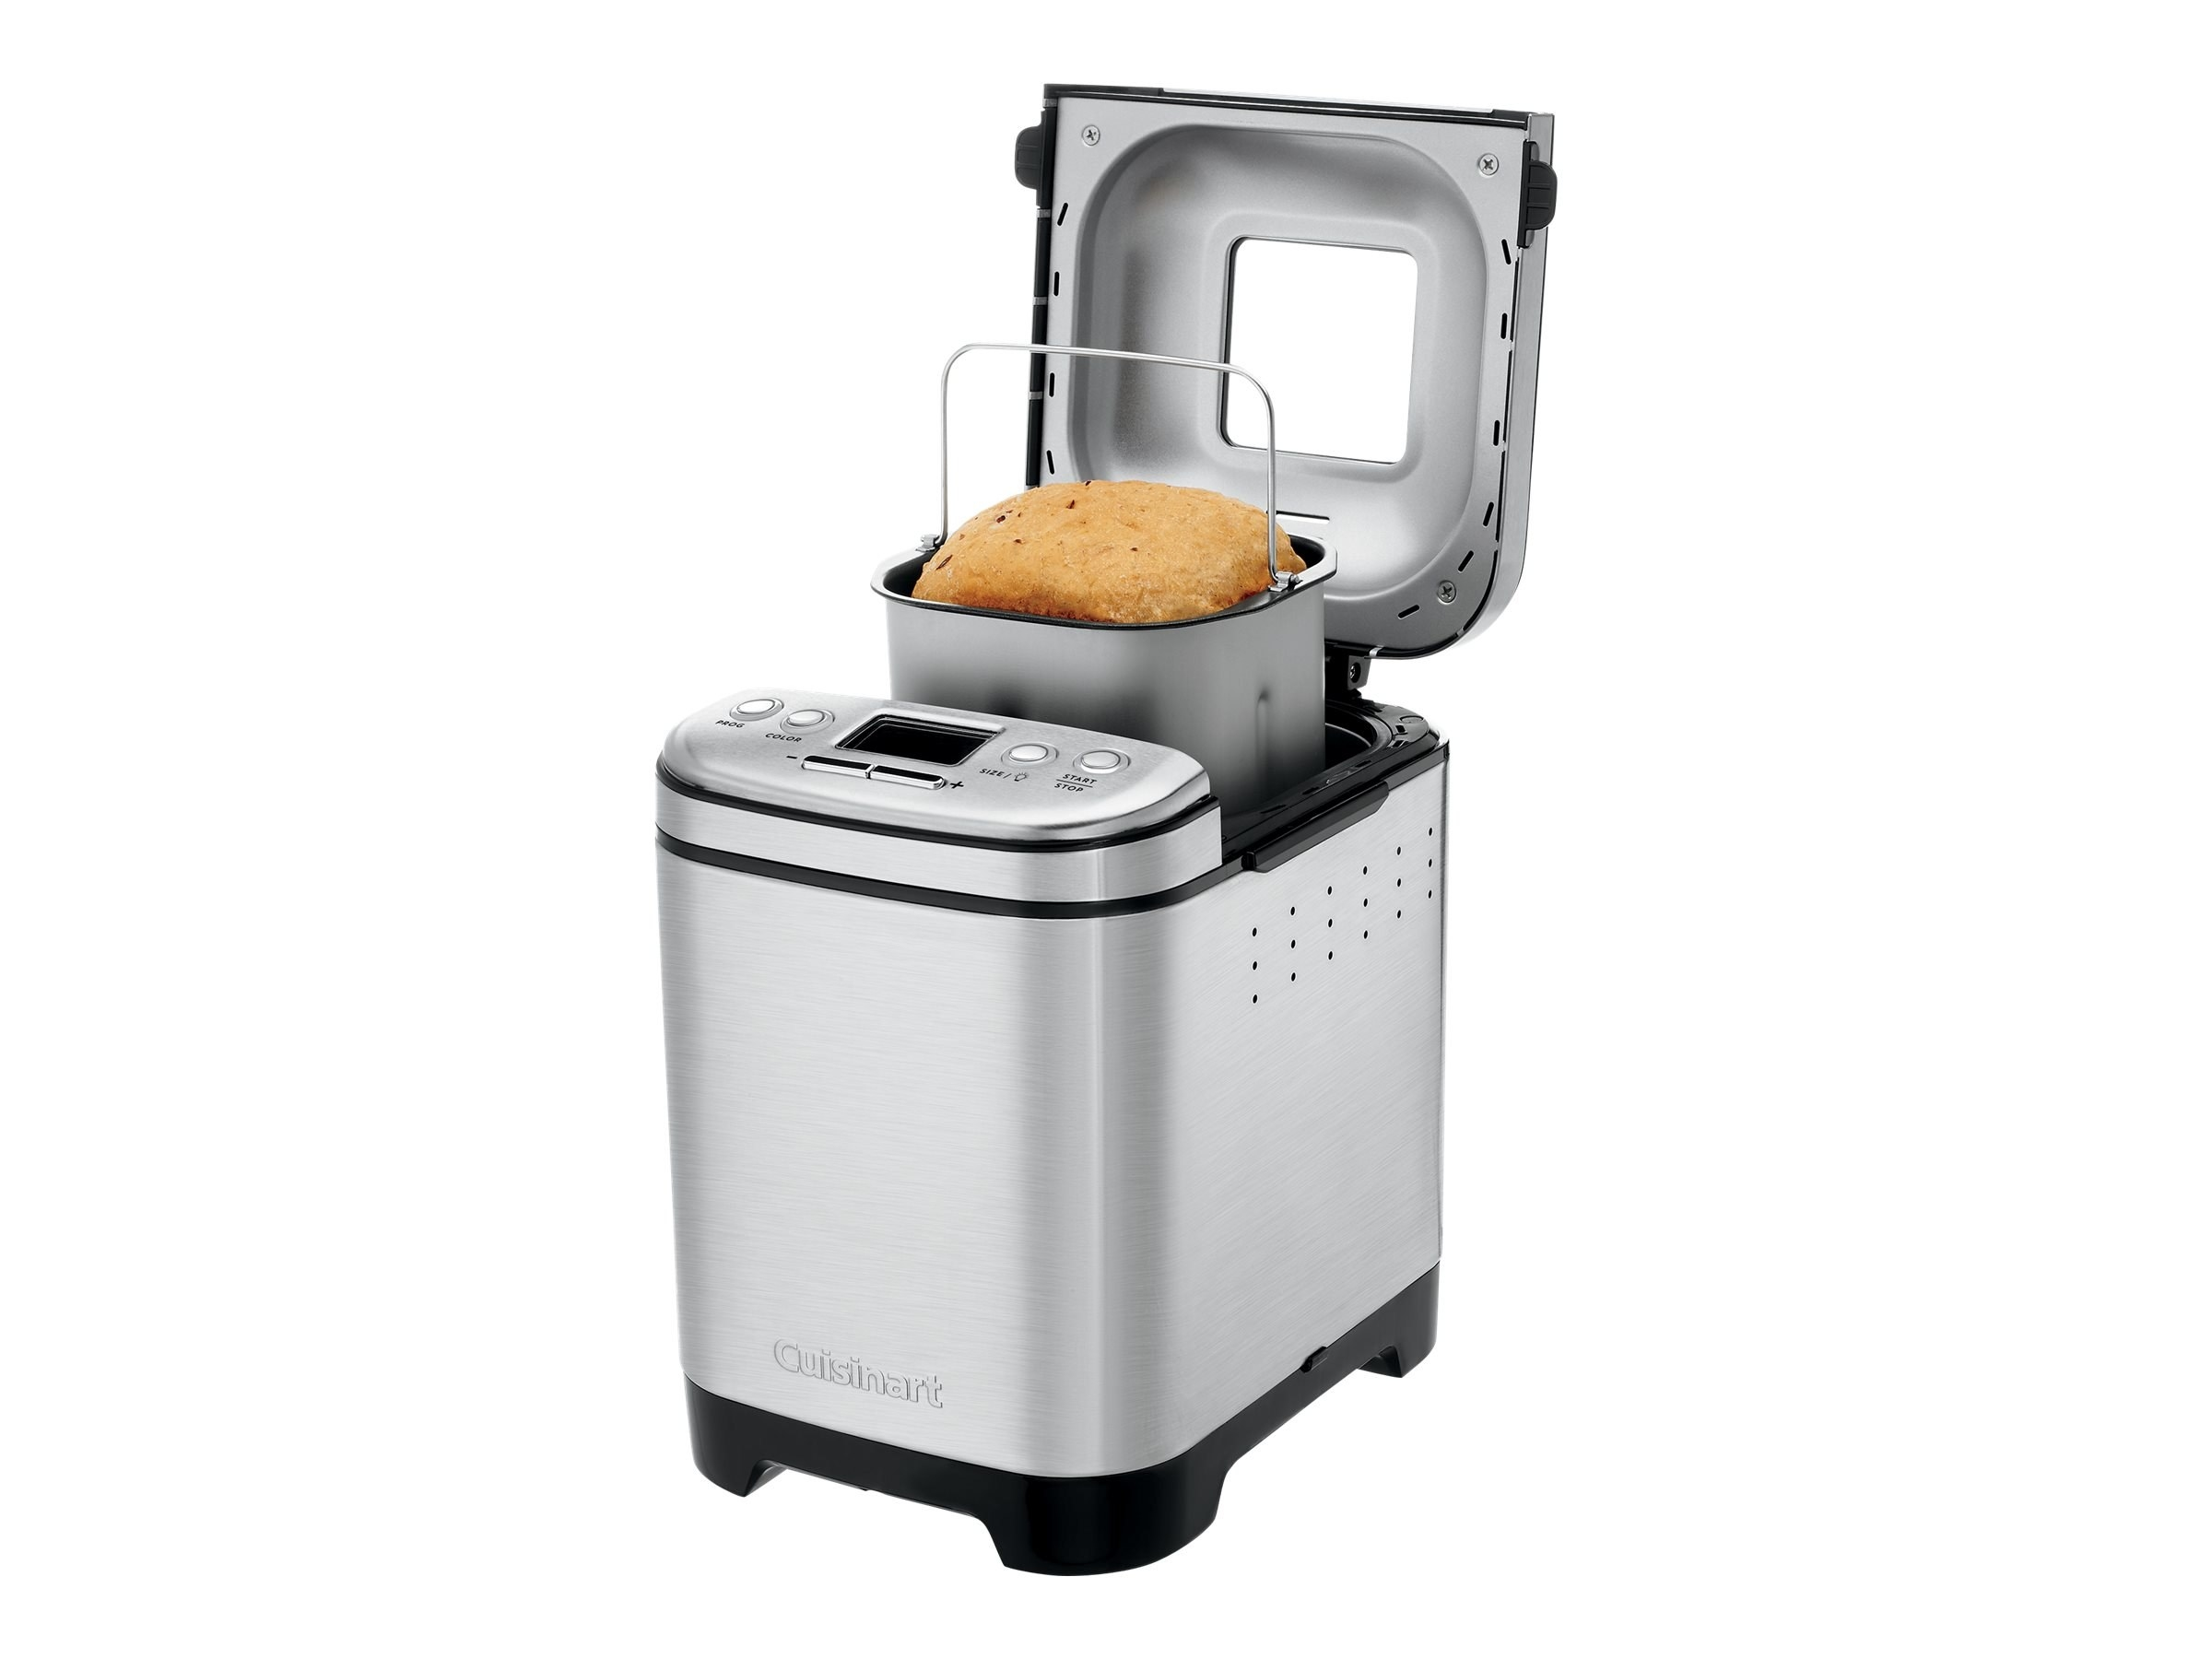 the bread maker with bread inside of it and the cover open